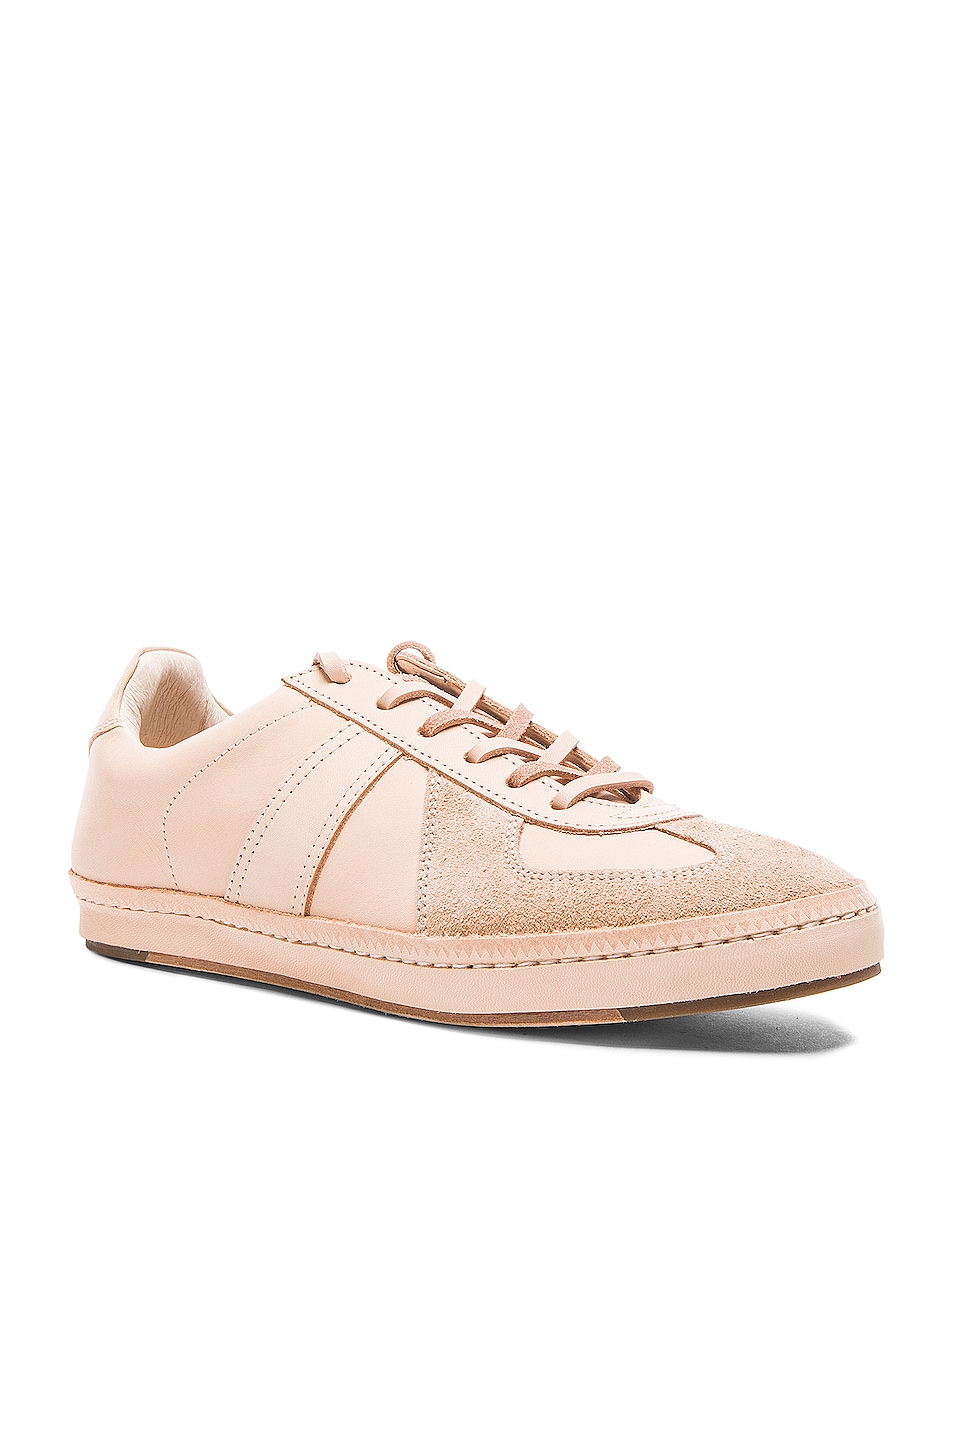 Image 2 of Hender Scheme Manual Industrial Product 05 in Natural